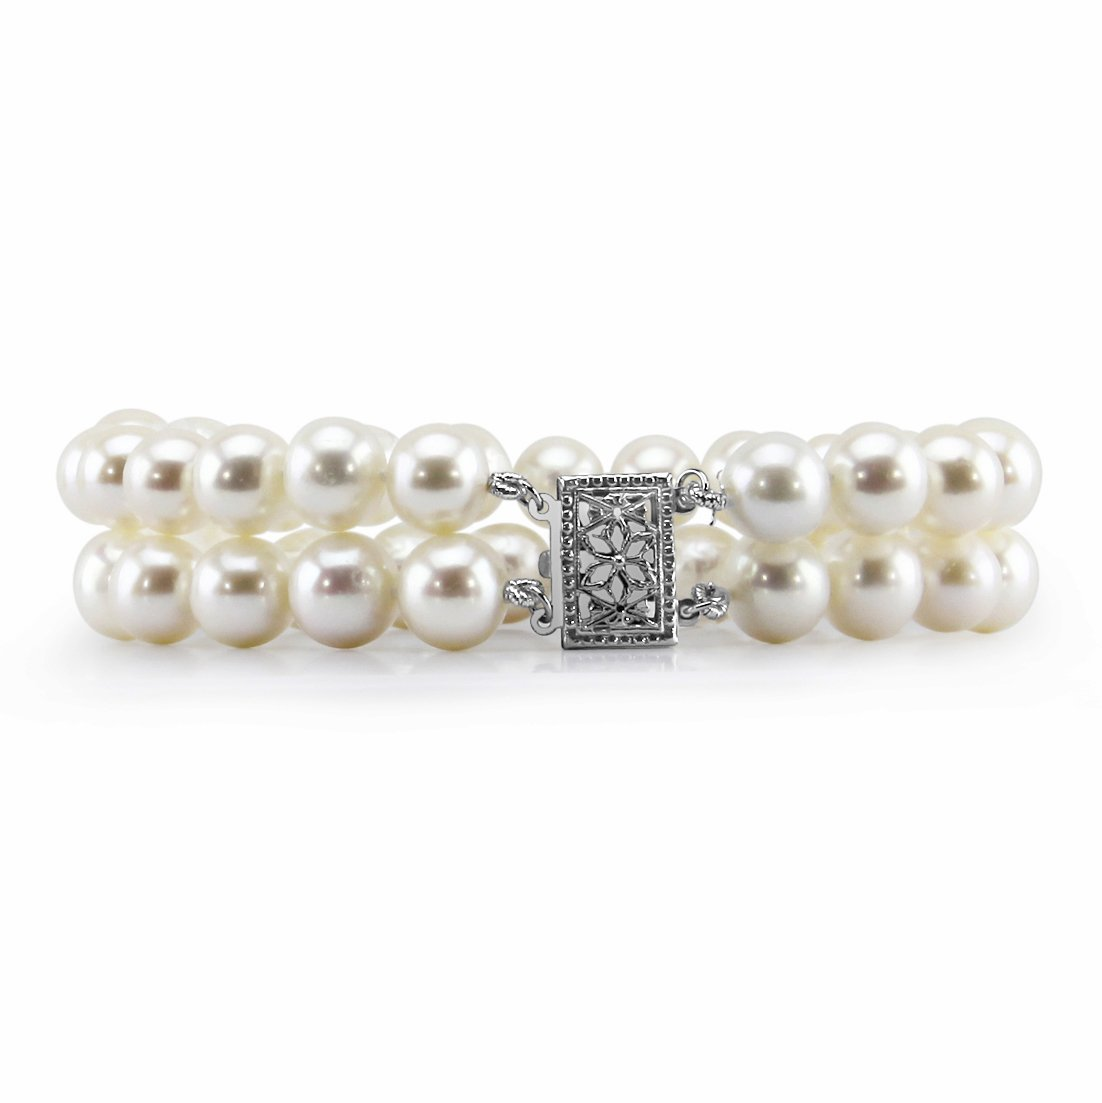 14K White Gold 8.0-9.0mm 2 Row White Freshwater Cultured Pearl Bracelet 7.5'' Length - AAA Quality